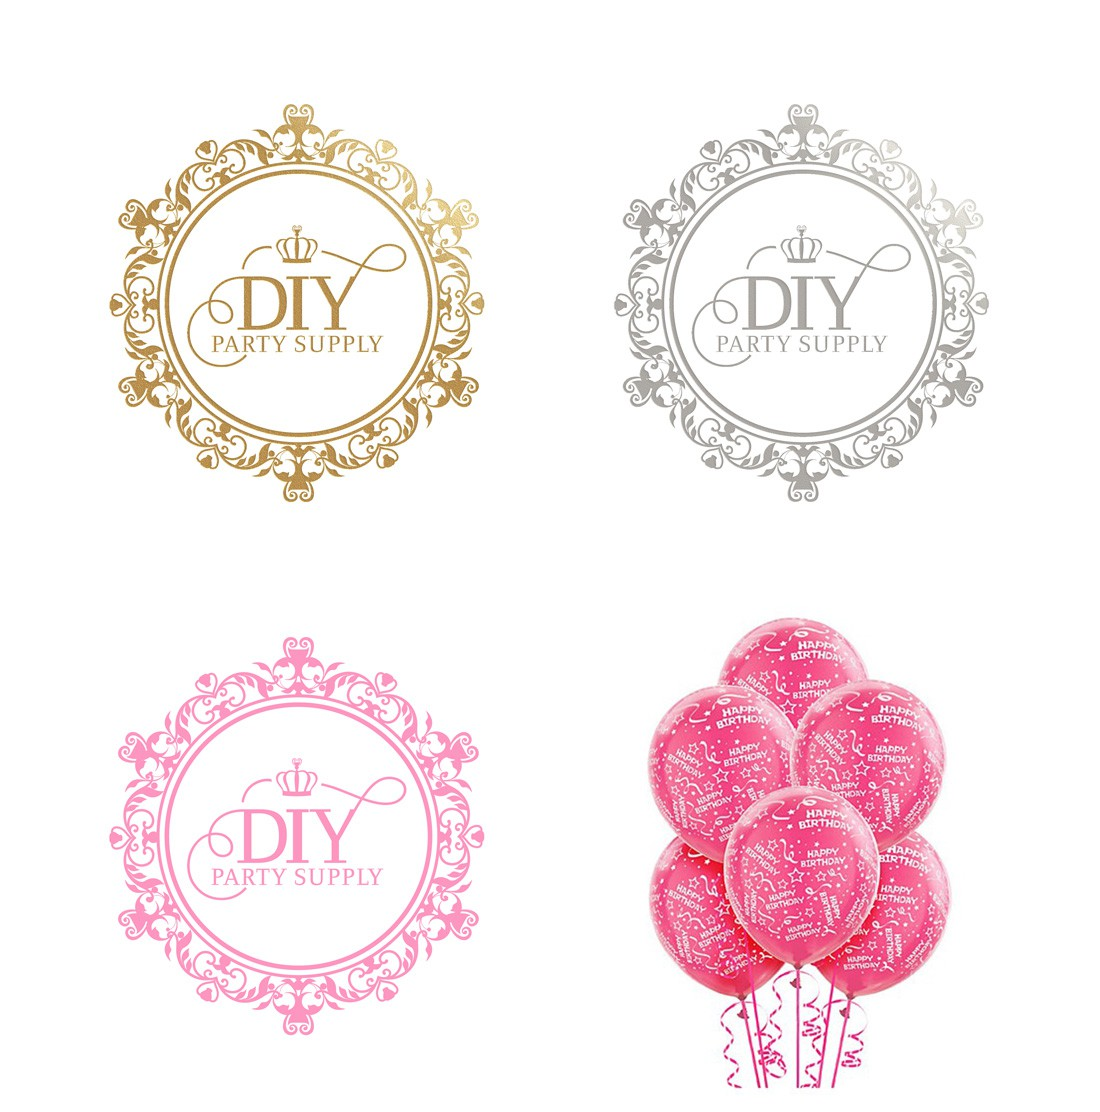 Looking for a luxury, classic, elaborate, pretty and whimsical logo for a girl's party supply company